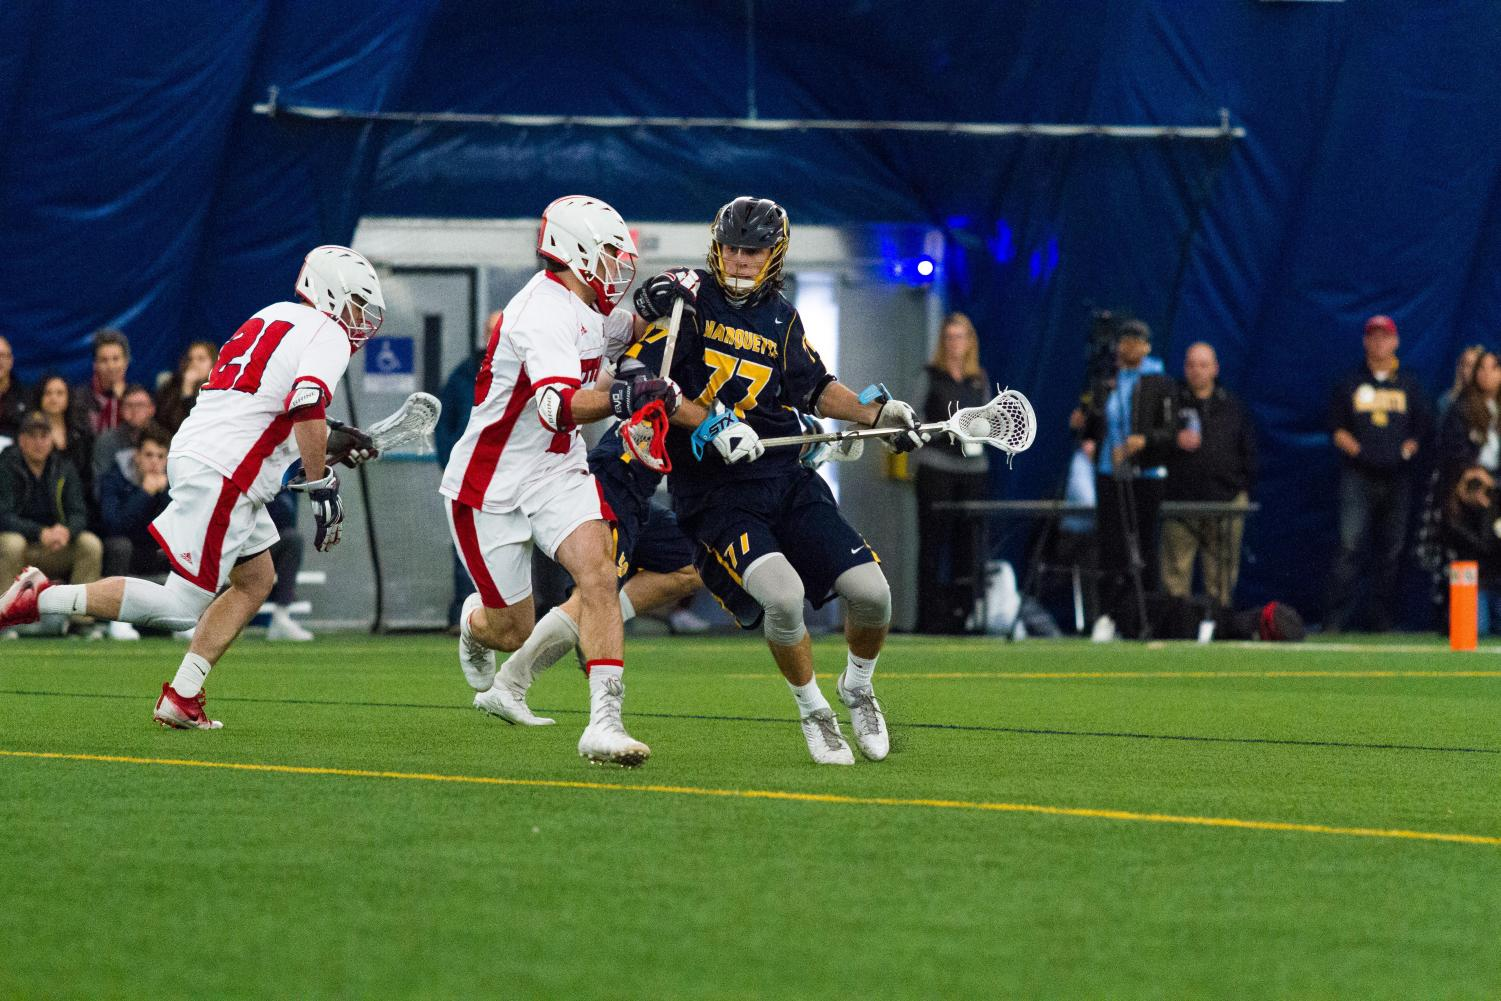 John Wagner, who scored 22 goals last year, will be charged with leading Marquette's offense.